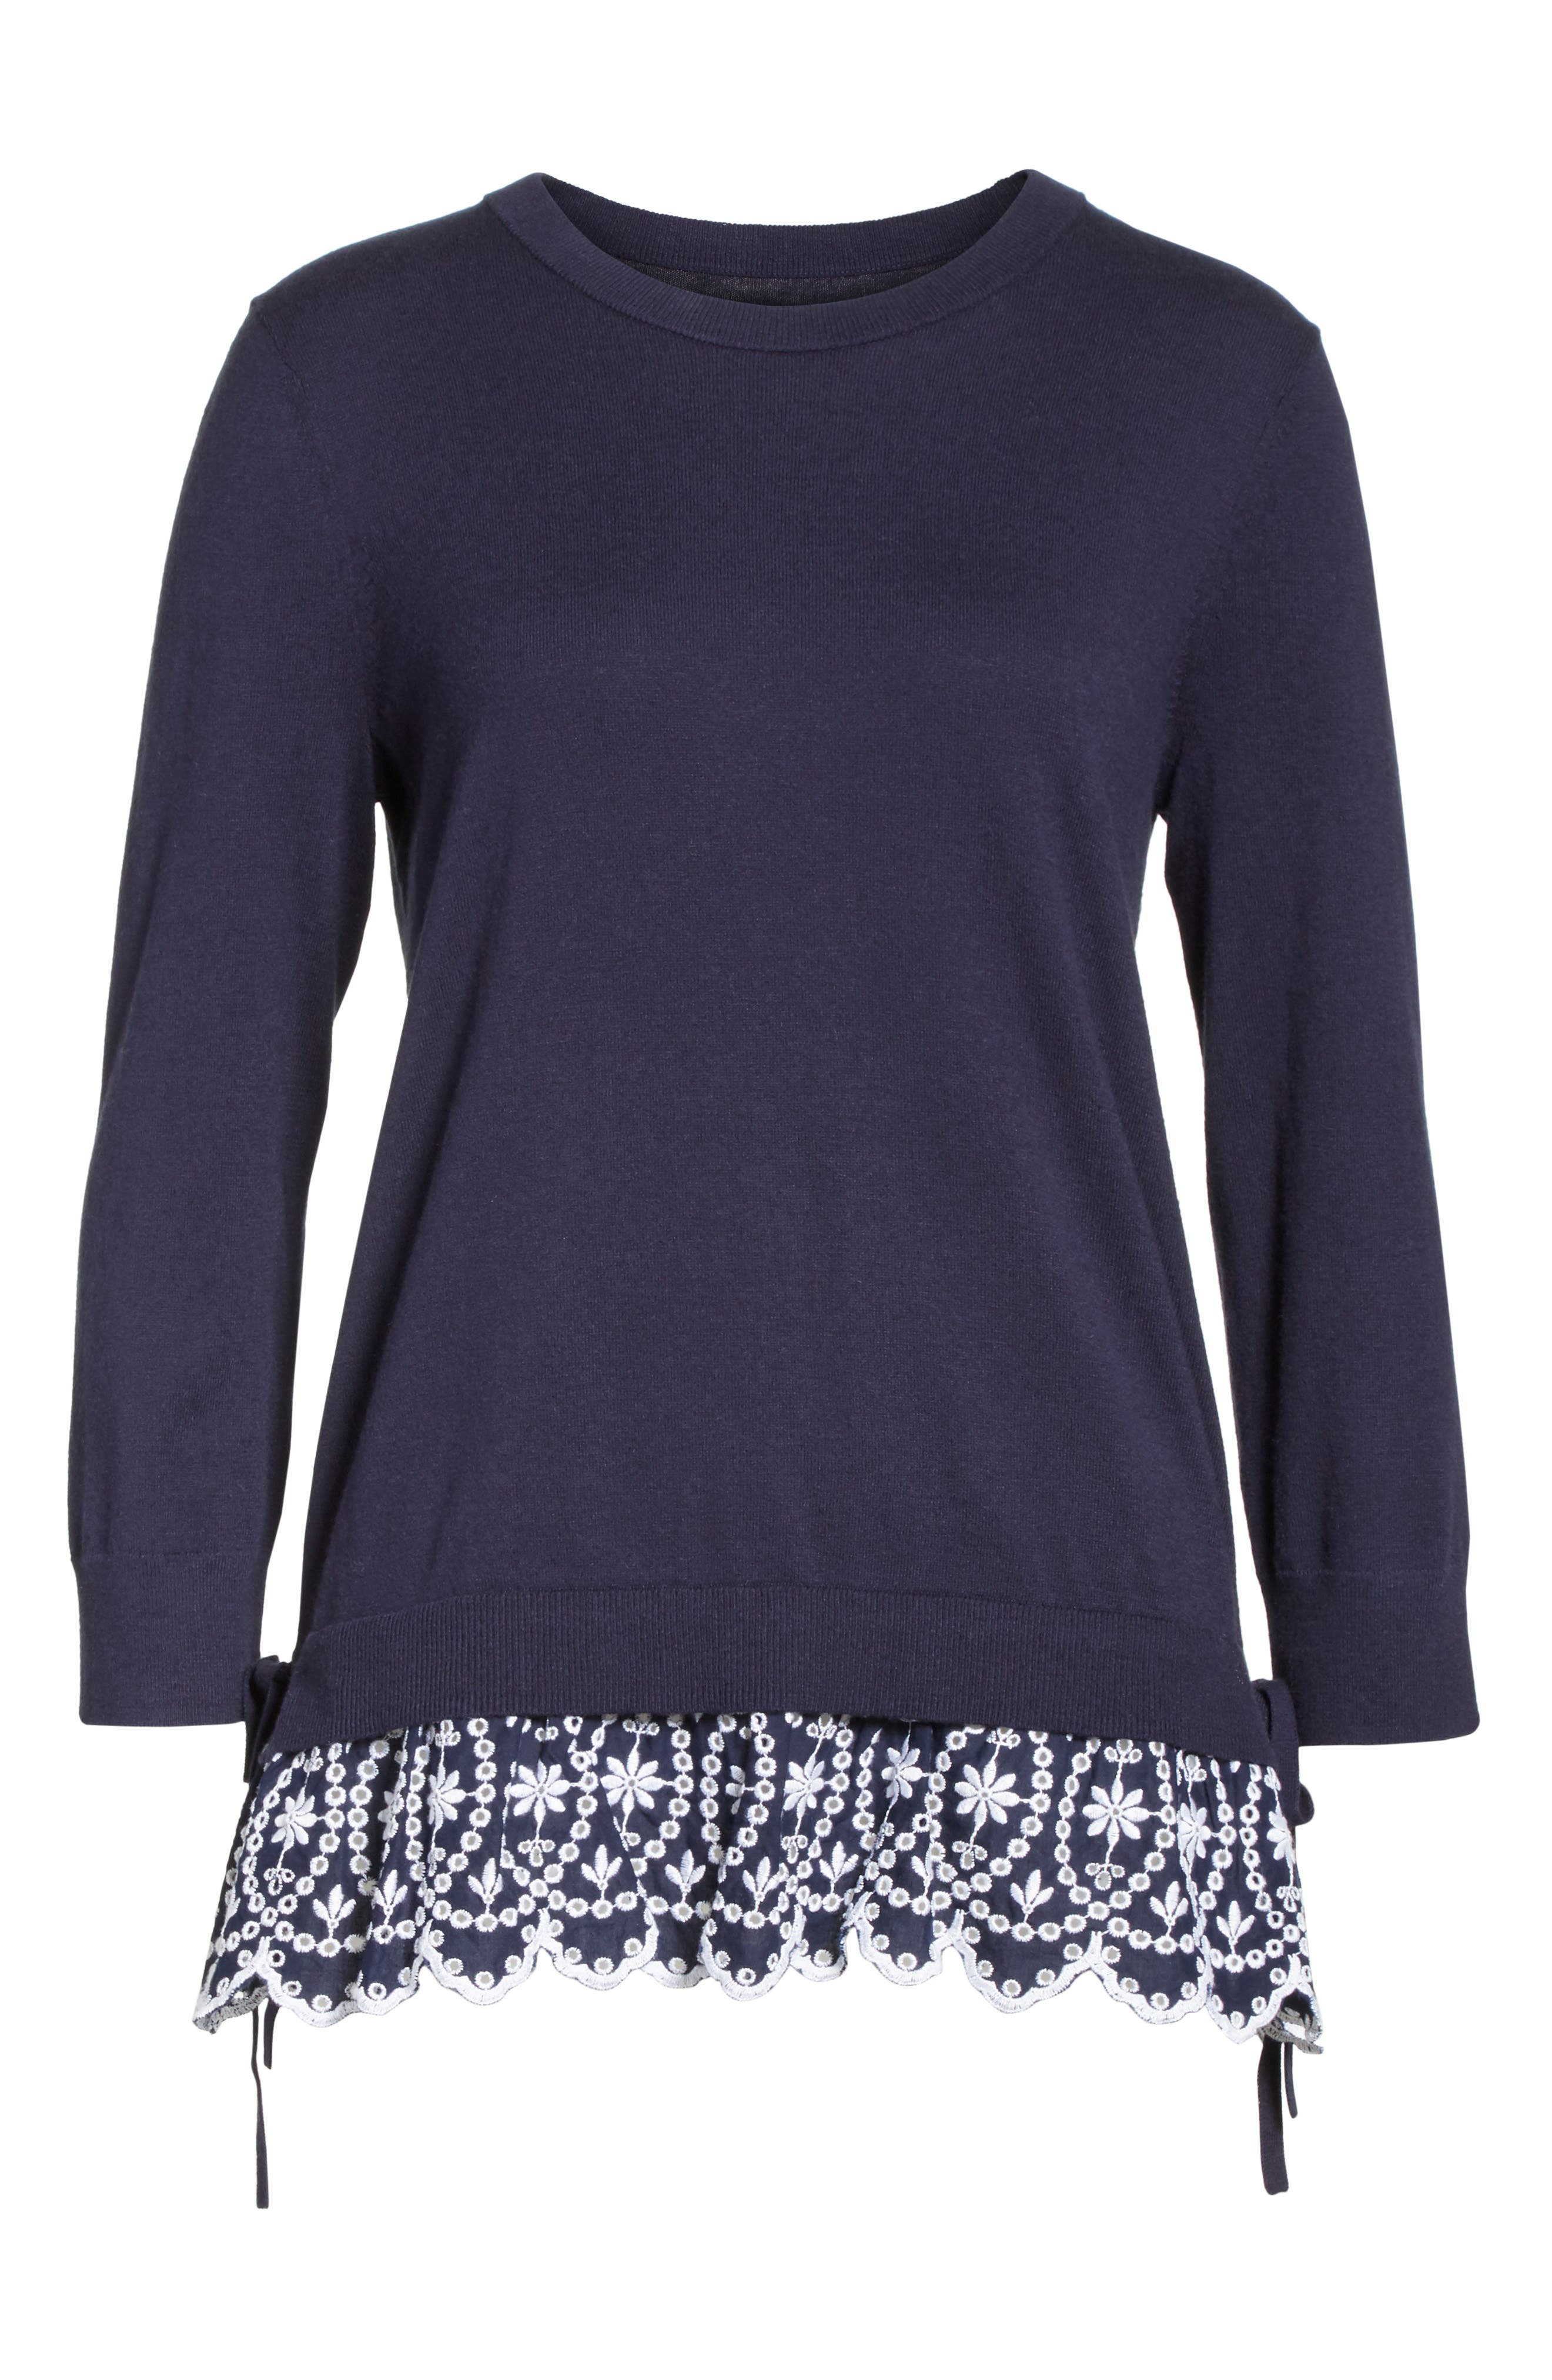 KATE SPADE NEW YORK,                             eyelet hem sweater,                             Alternate thumbnail 6, color,                             473